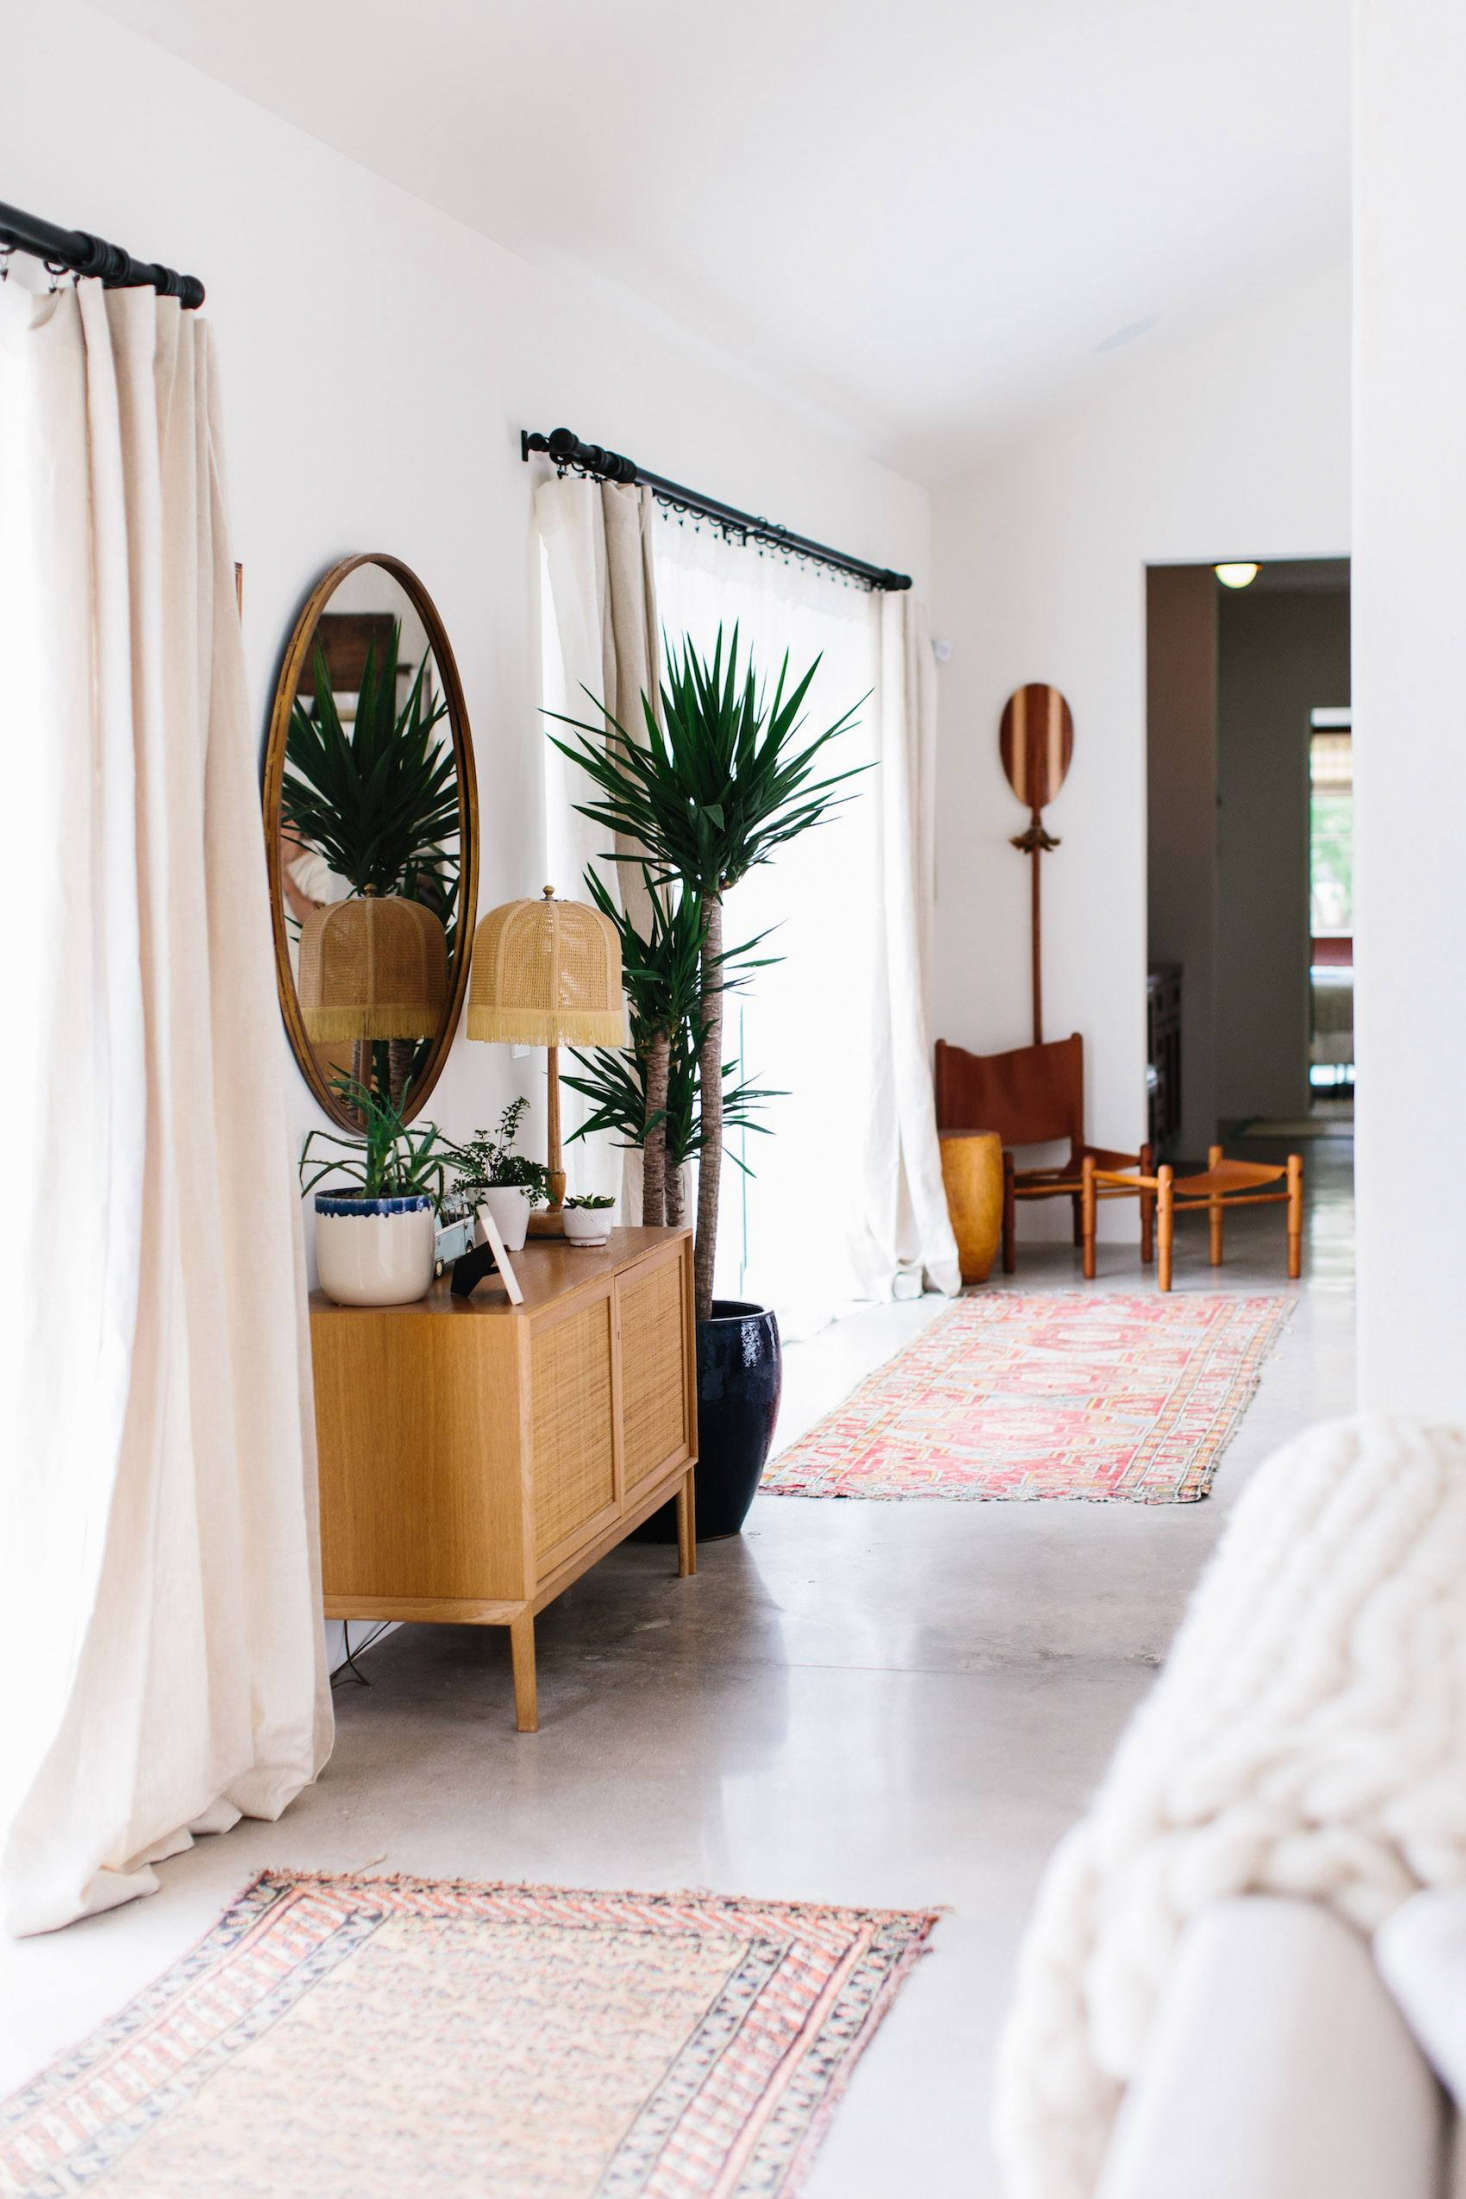 Towill sourced kilim rugs from local antiques stores.